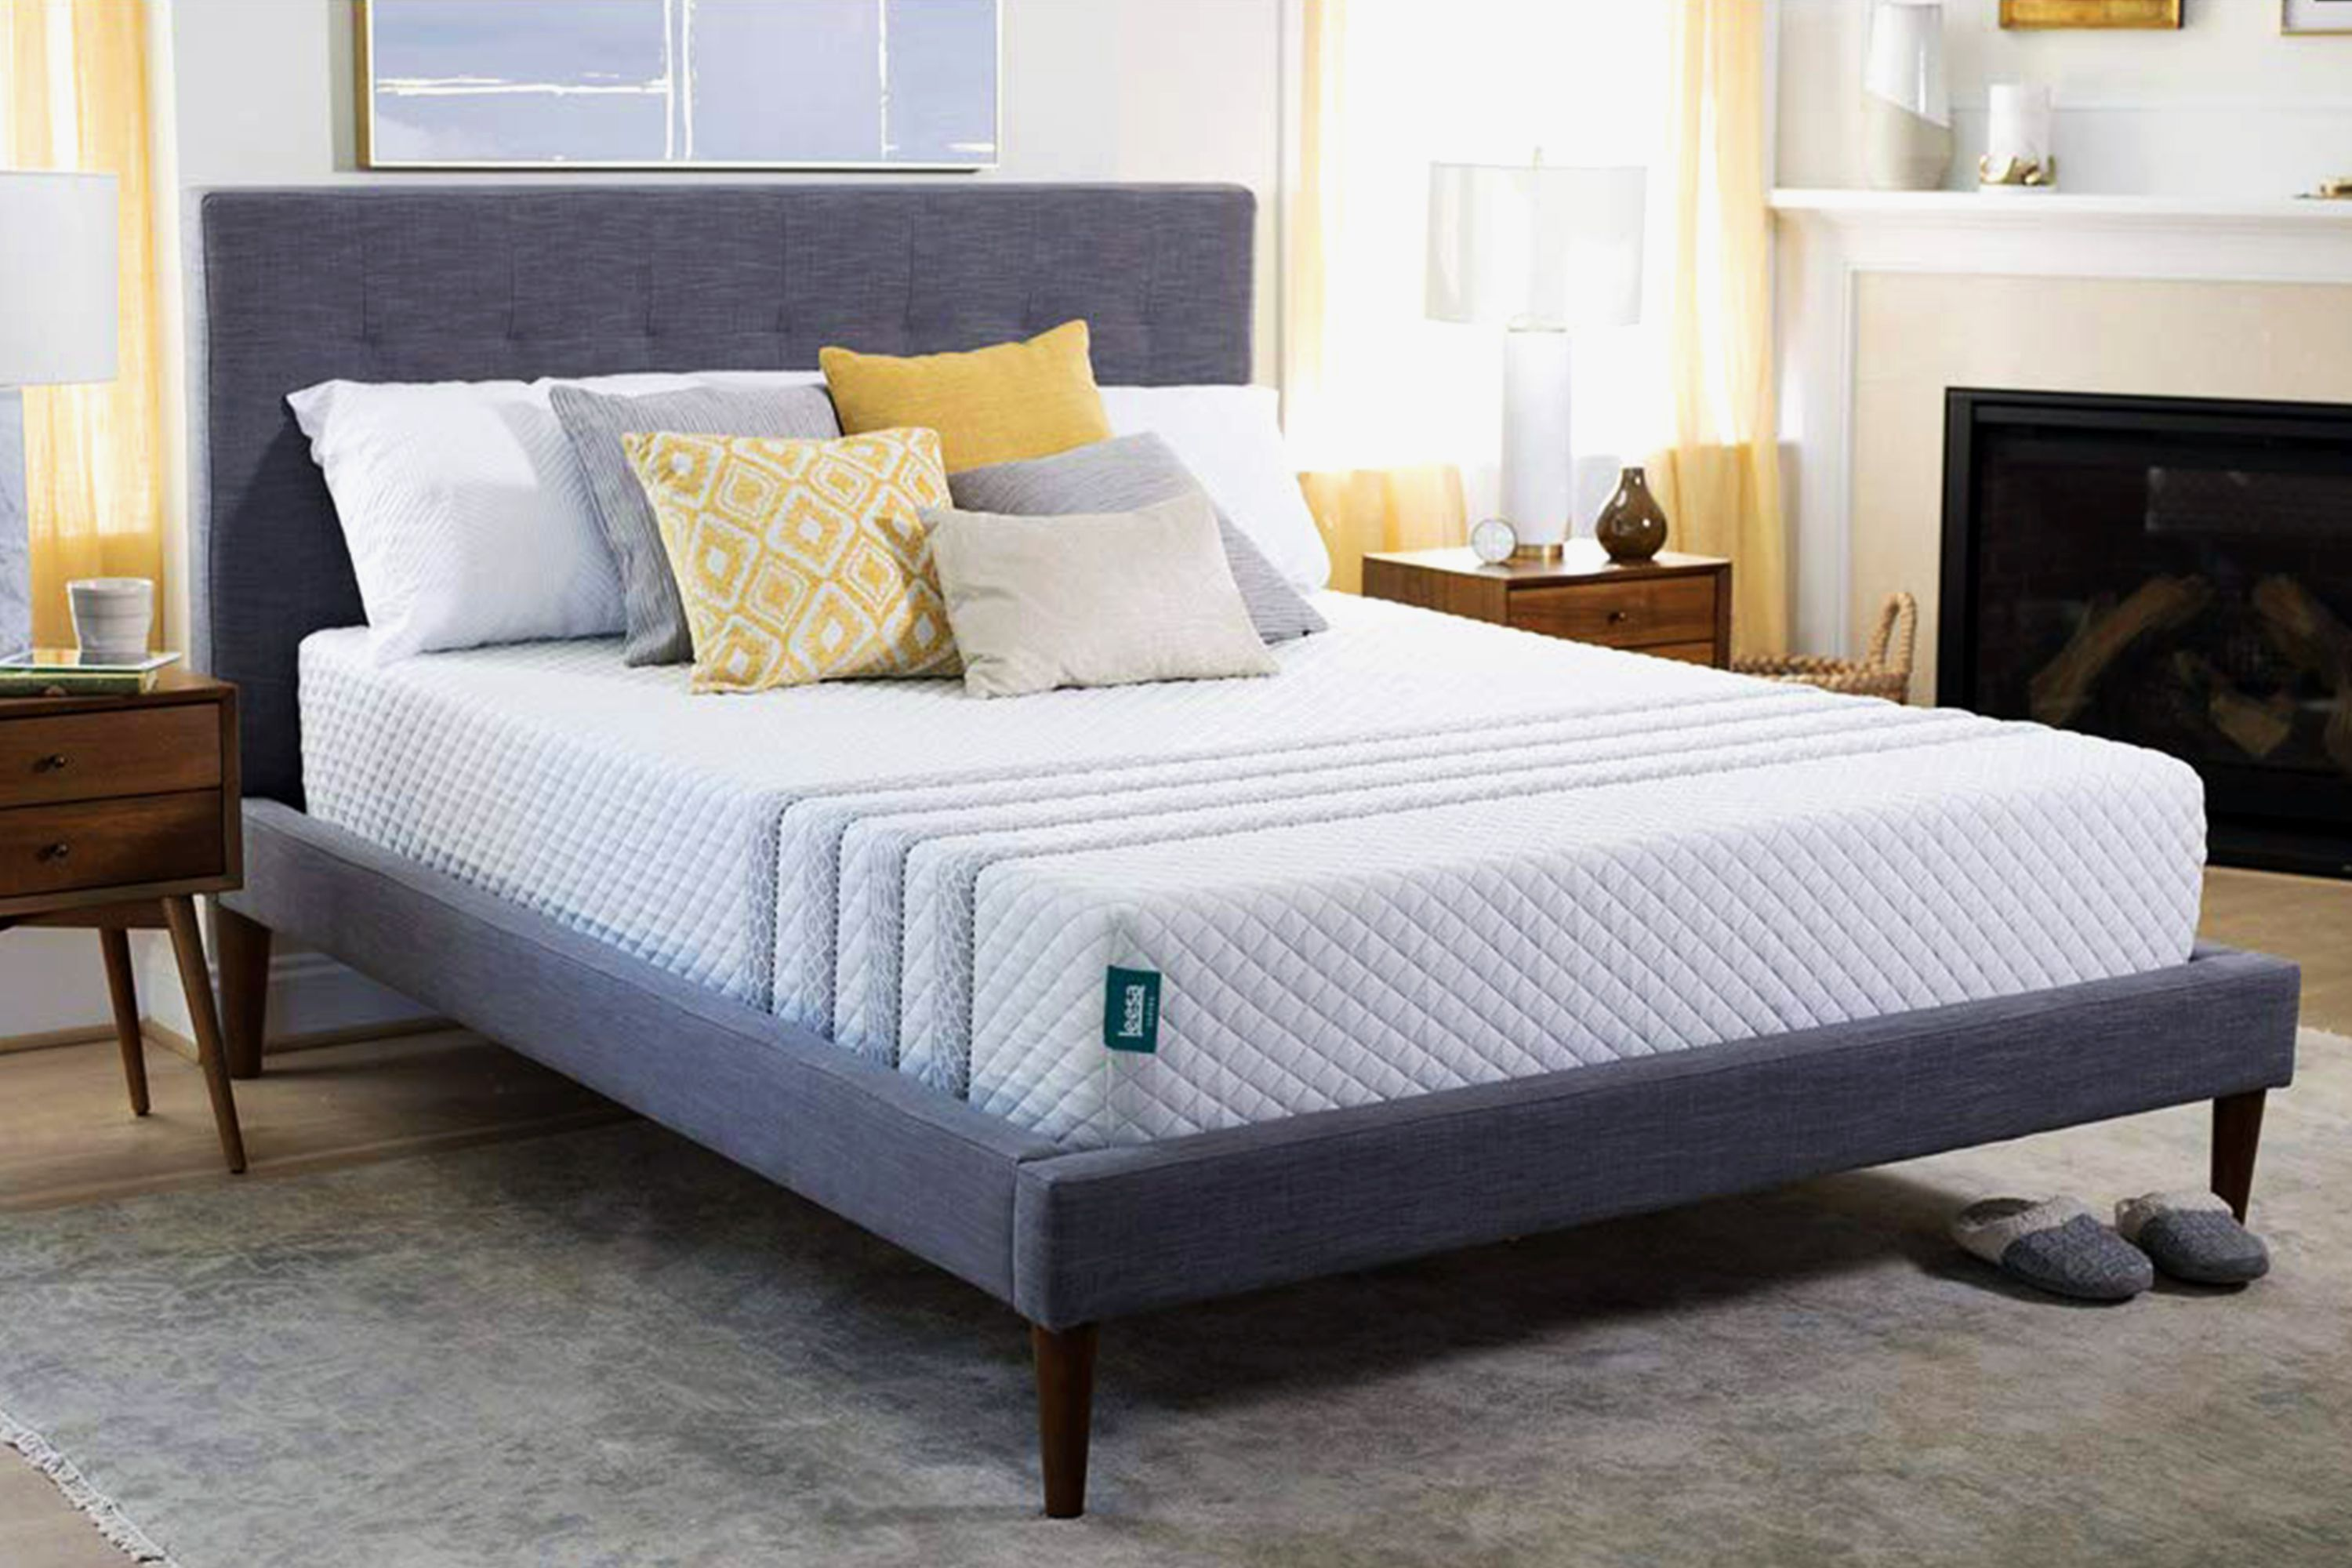 9 Best Mattress in a Box Brands to Buy in 2019 - Bed-in-a ...